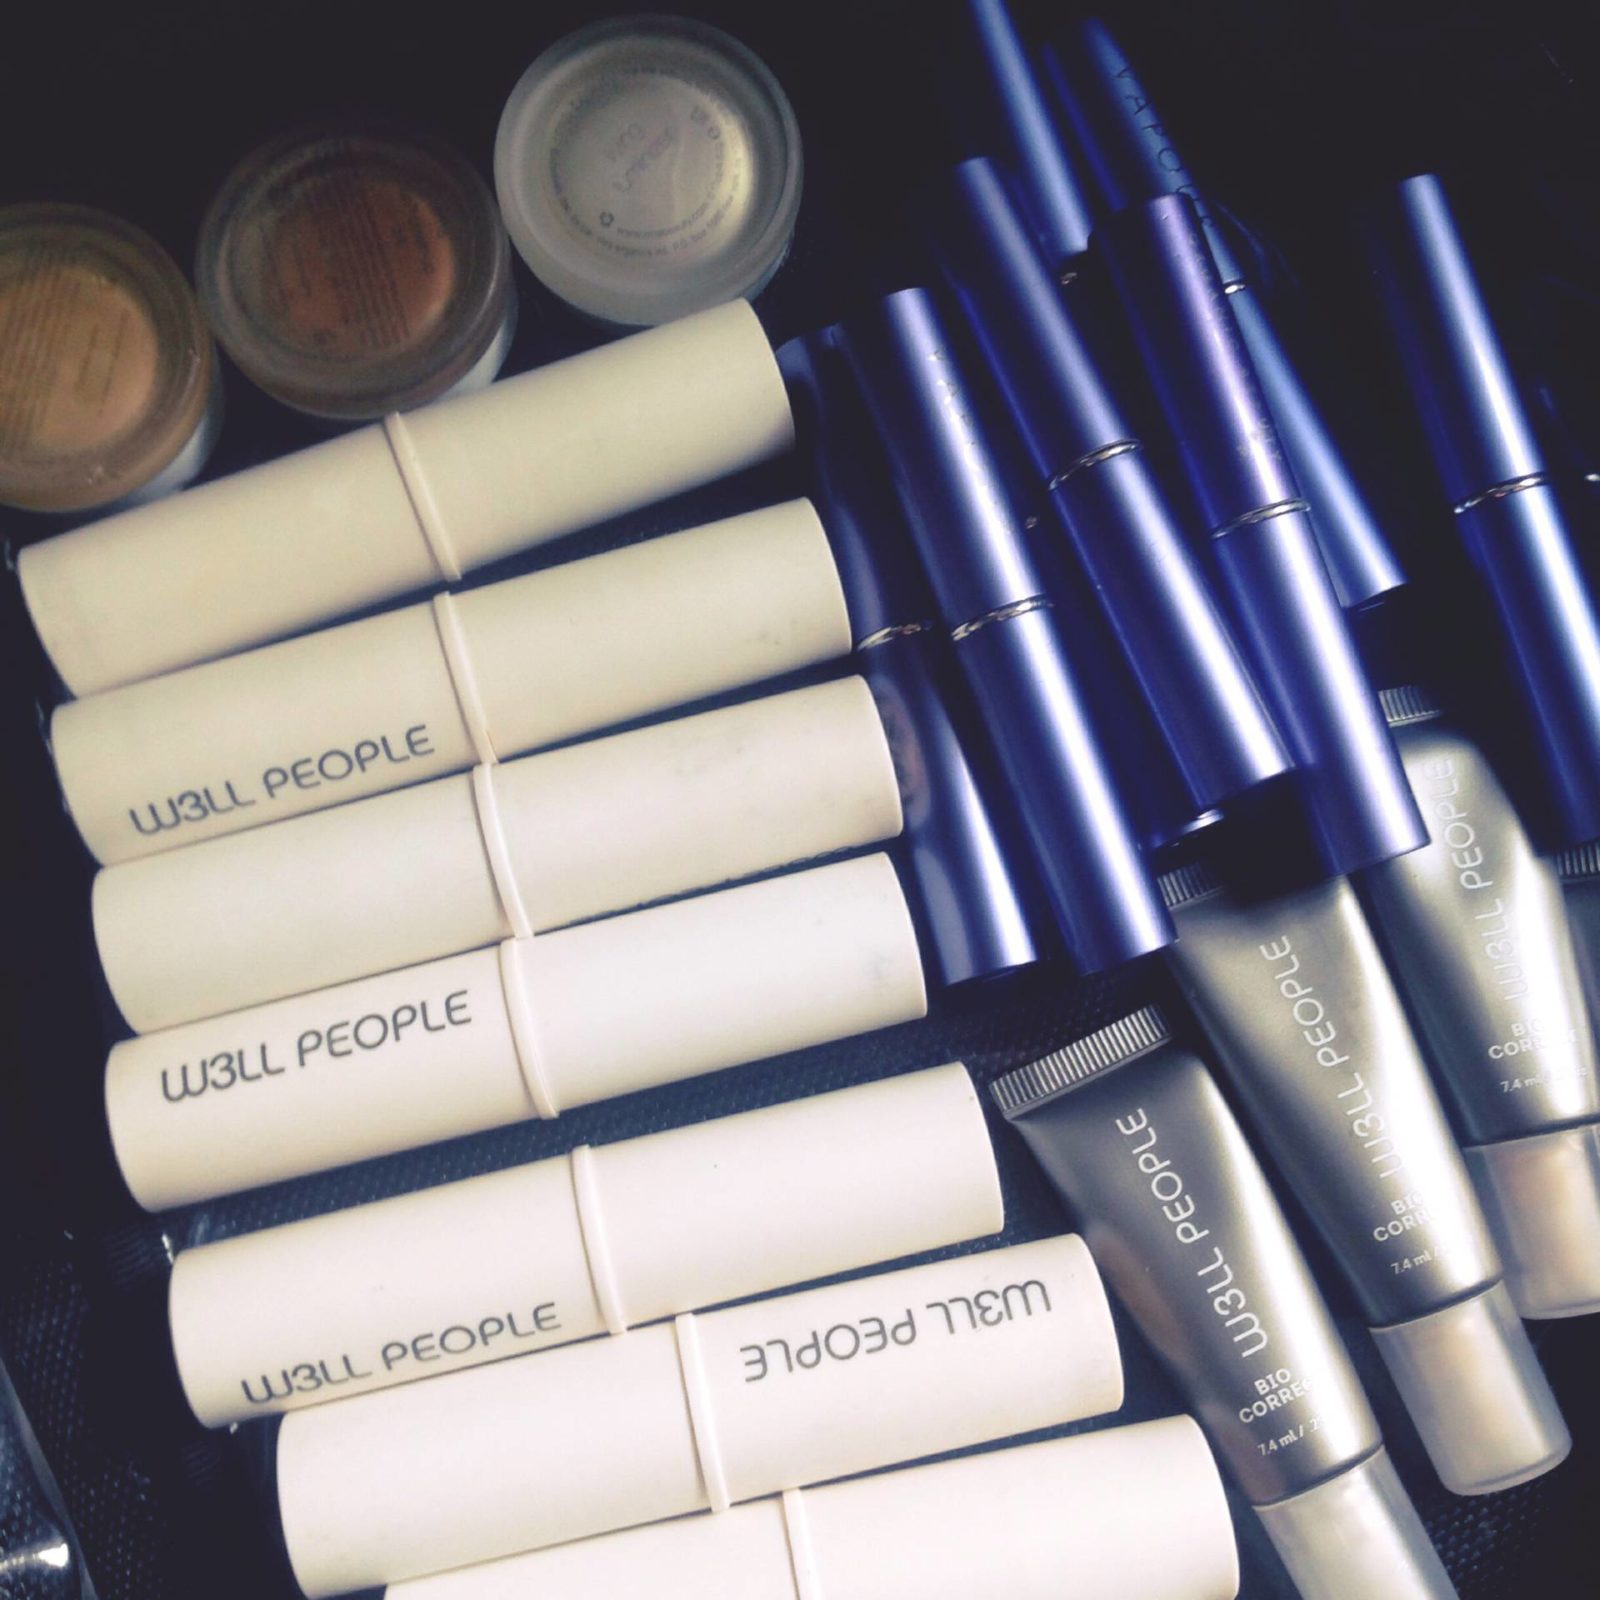 The thing about concealer…